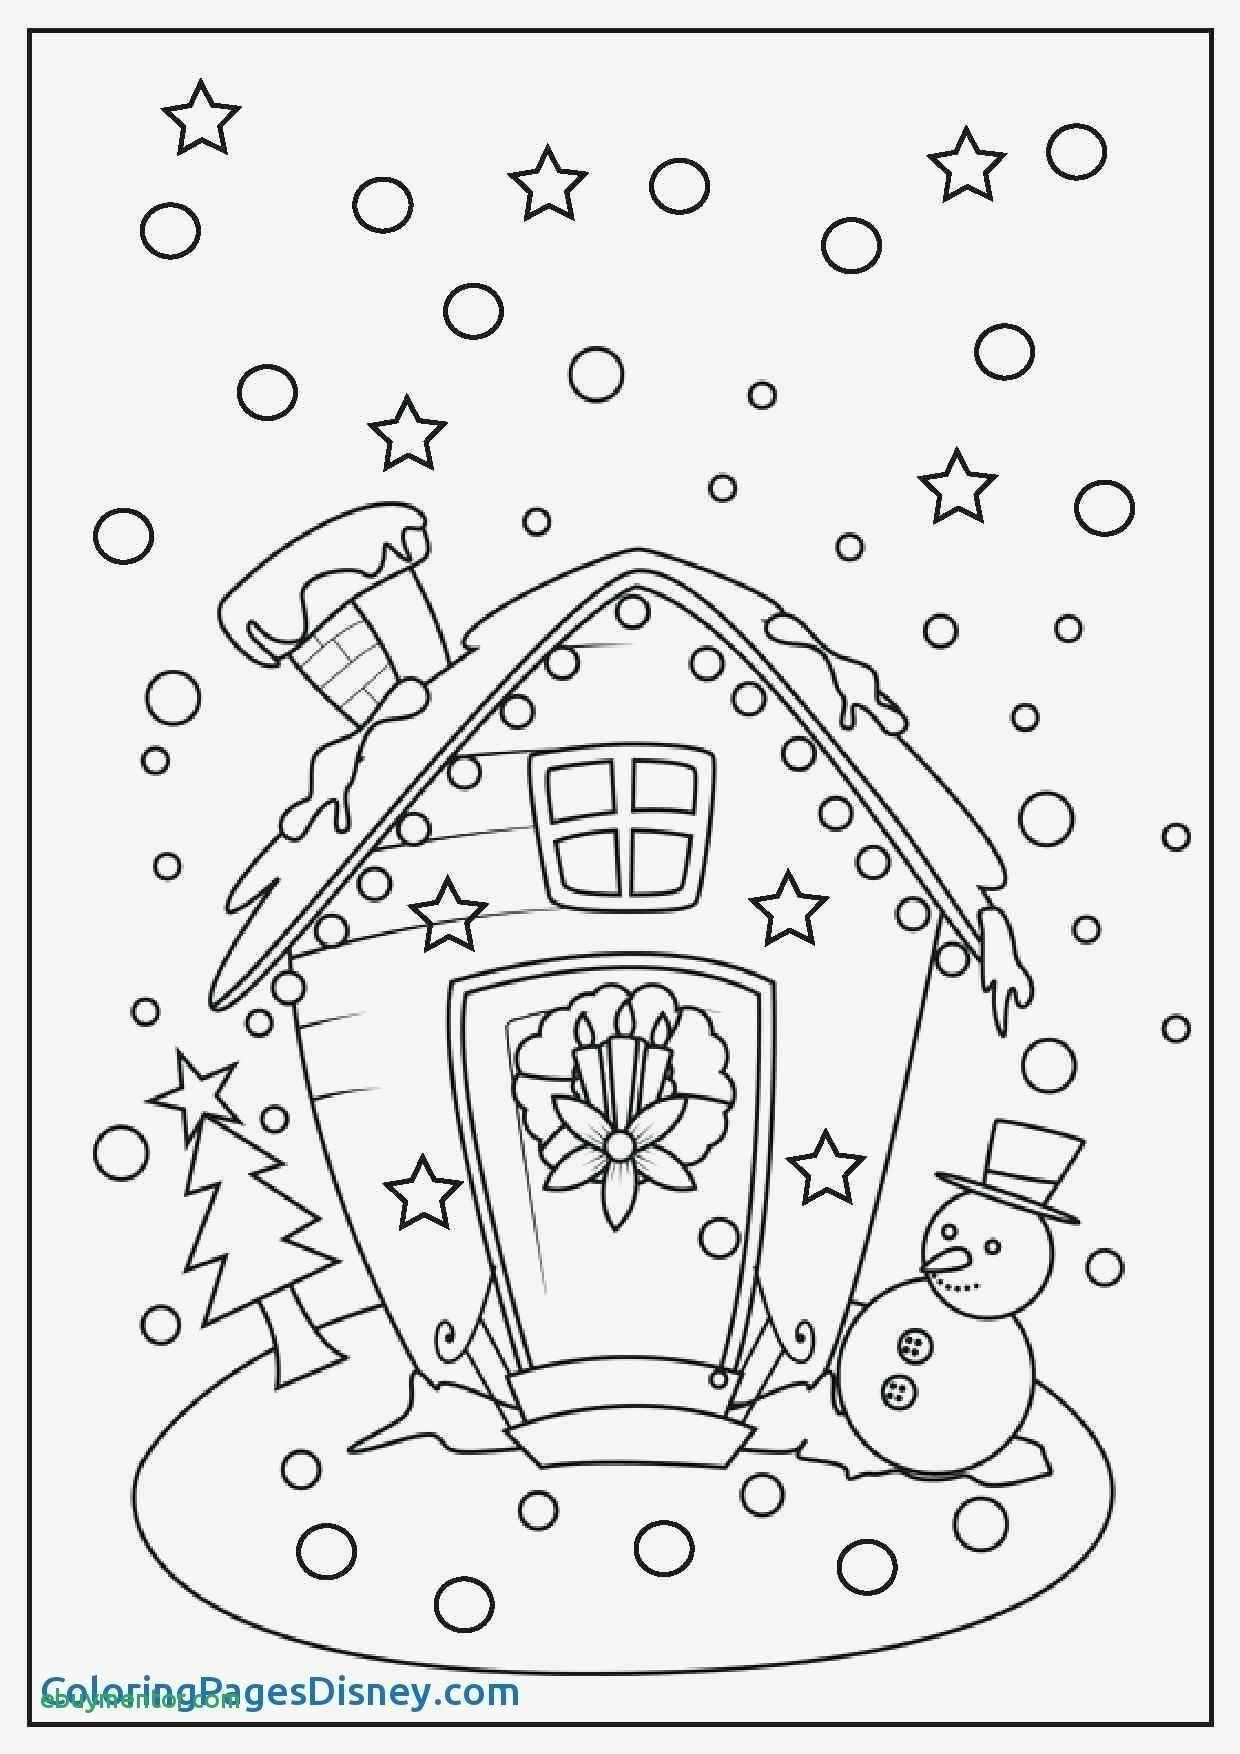 I Love You Coloring Pages Awesome 30 Coloring Pages Thank You Cards Collecti In 2020 Printable Christmas Coloring Pages Mandala Coloring Pages Halloween Coloring Pages